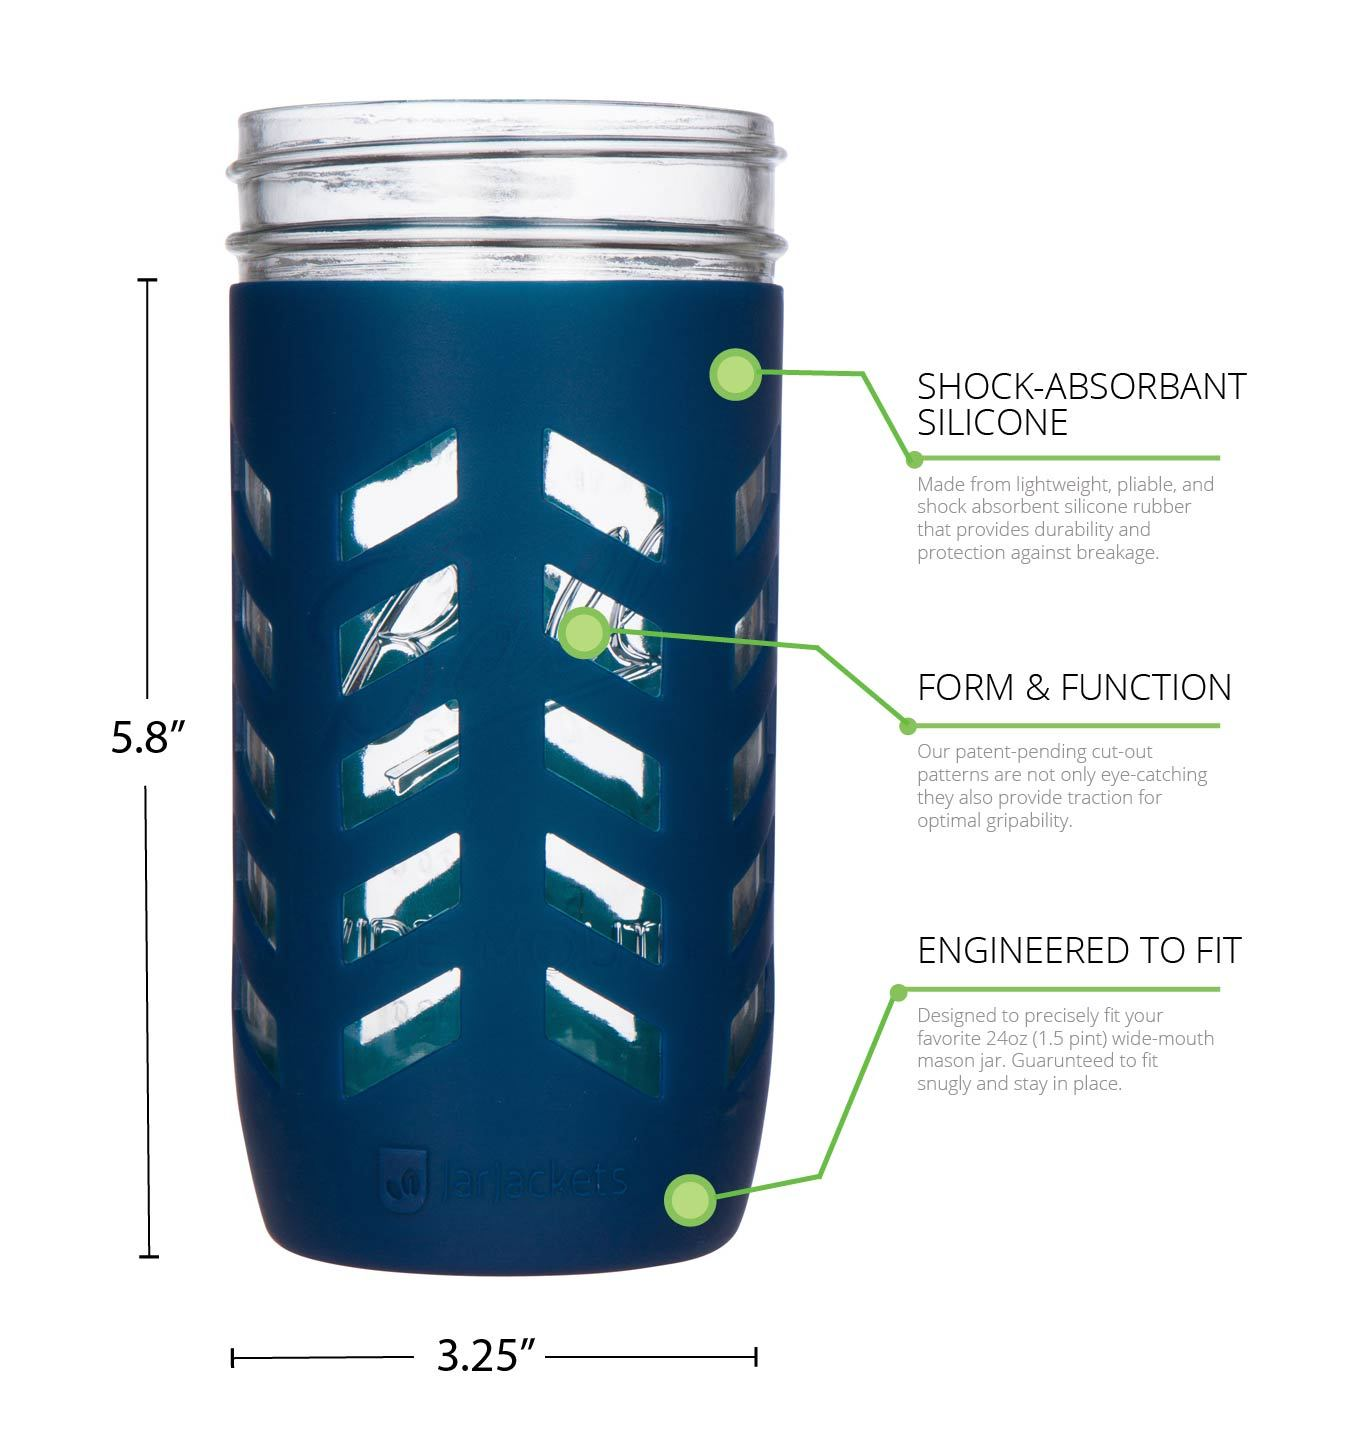 24oz mason jar silicone sleeves